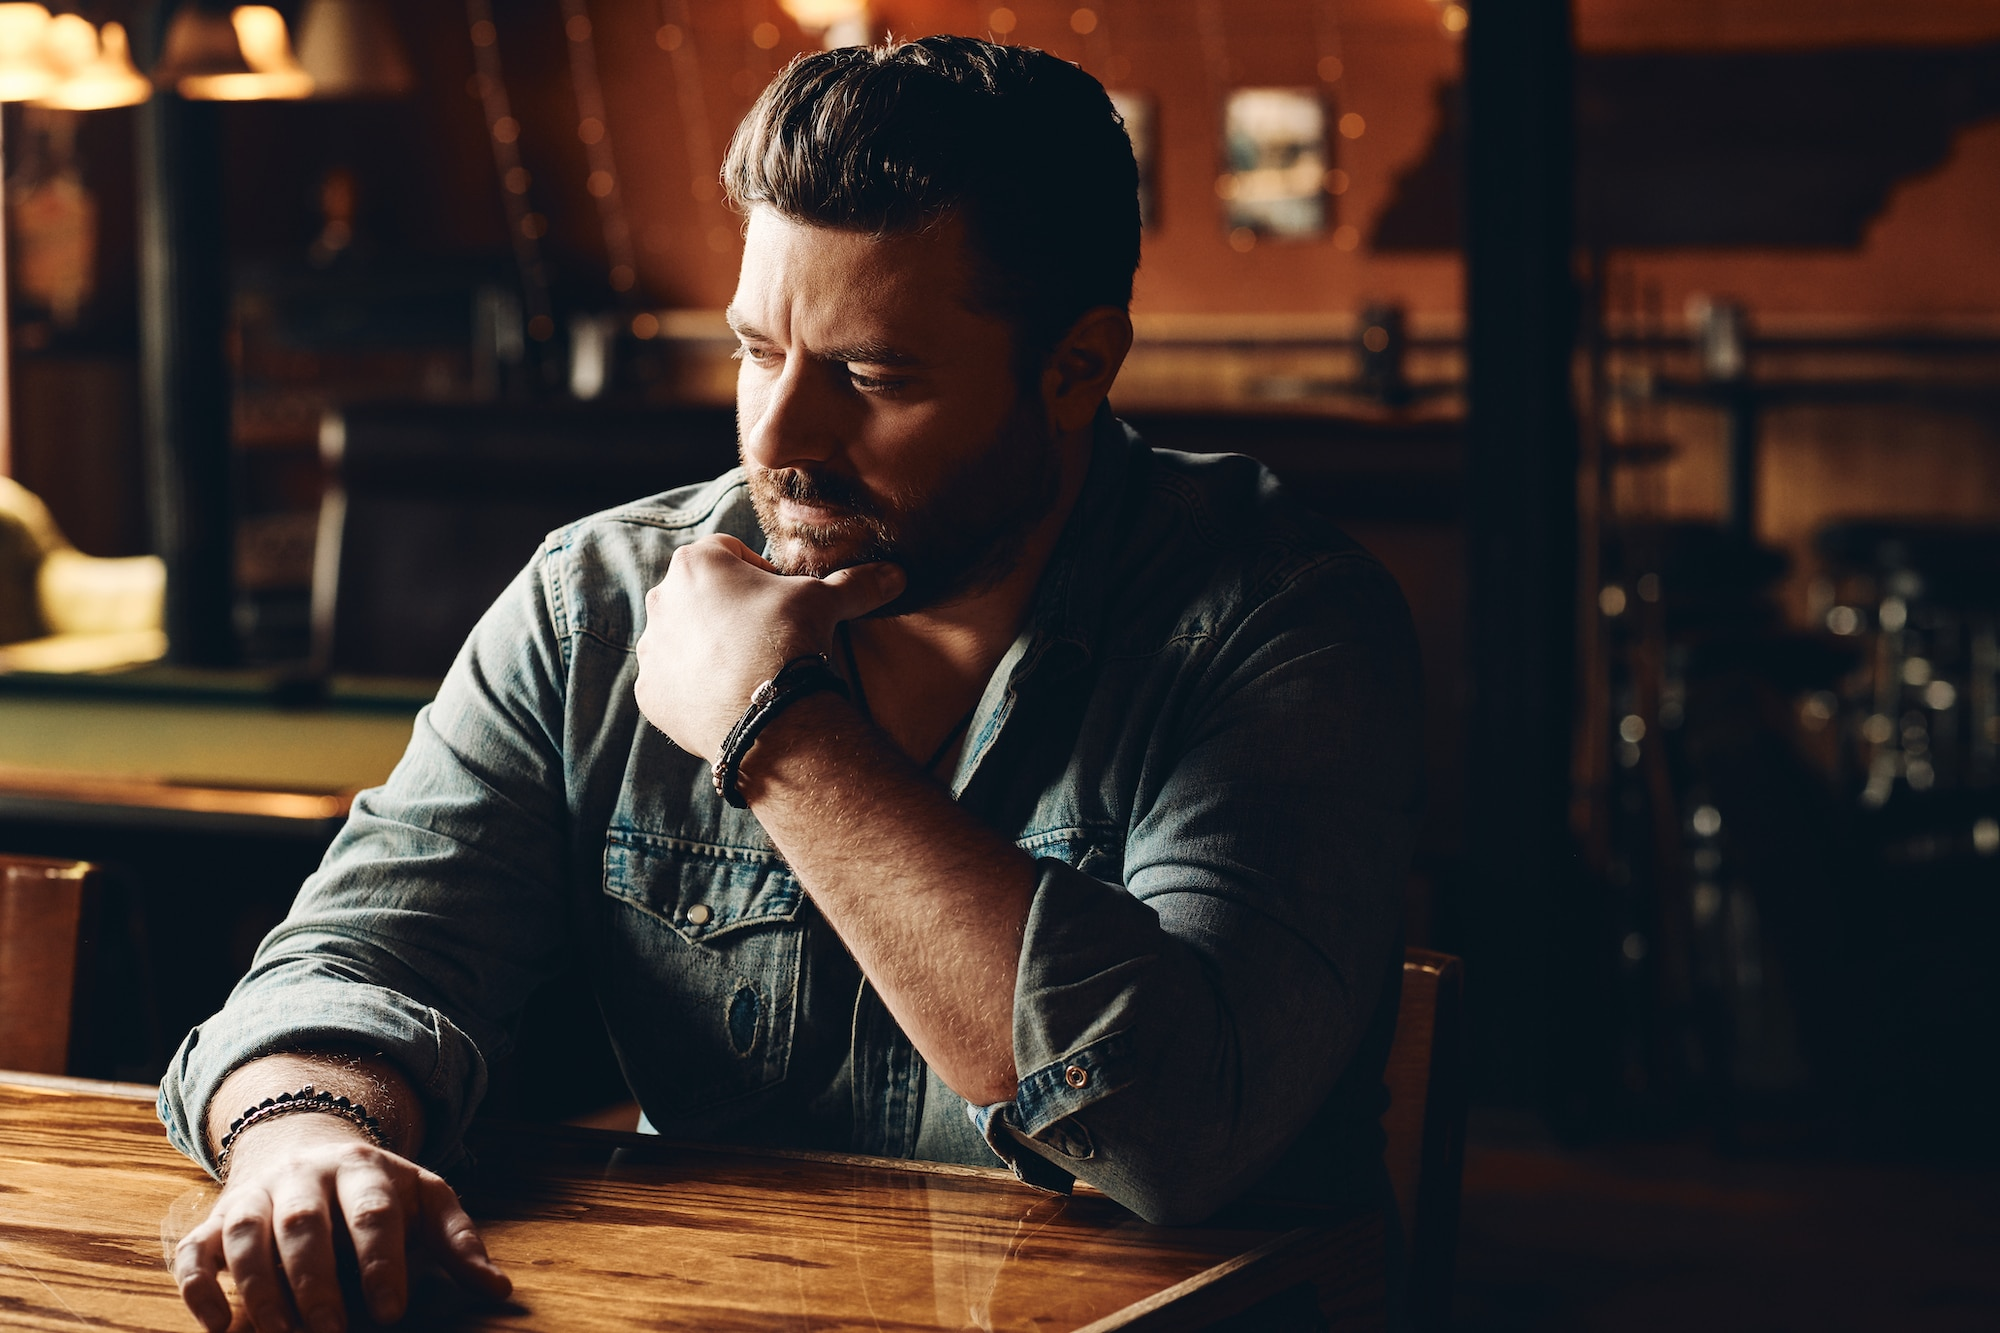 Chris Young debuts self-directed music video for 'Drowning'